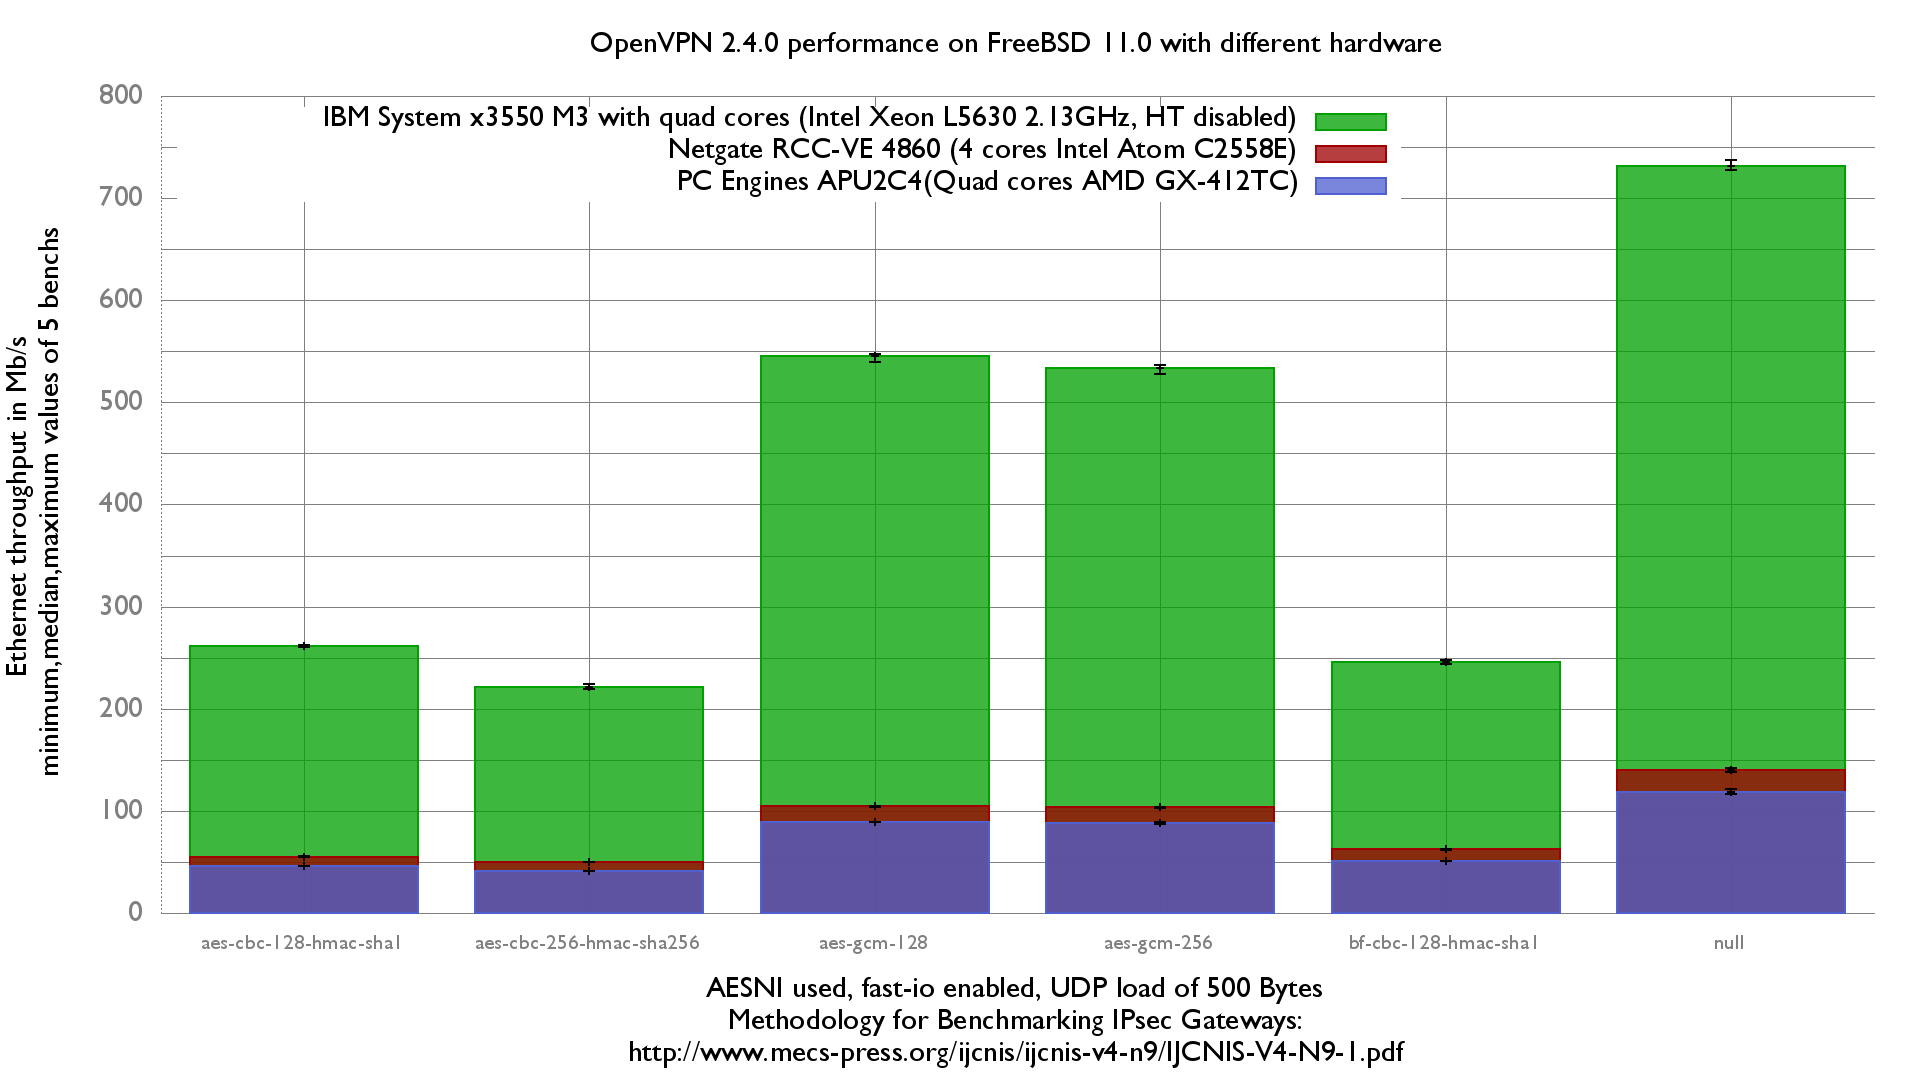 OpenVPN performance on multiple servers with FreeBSD 11.0